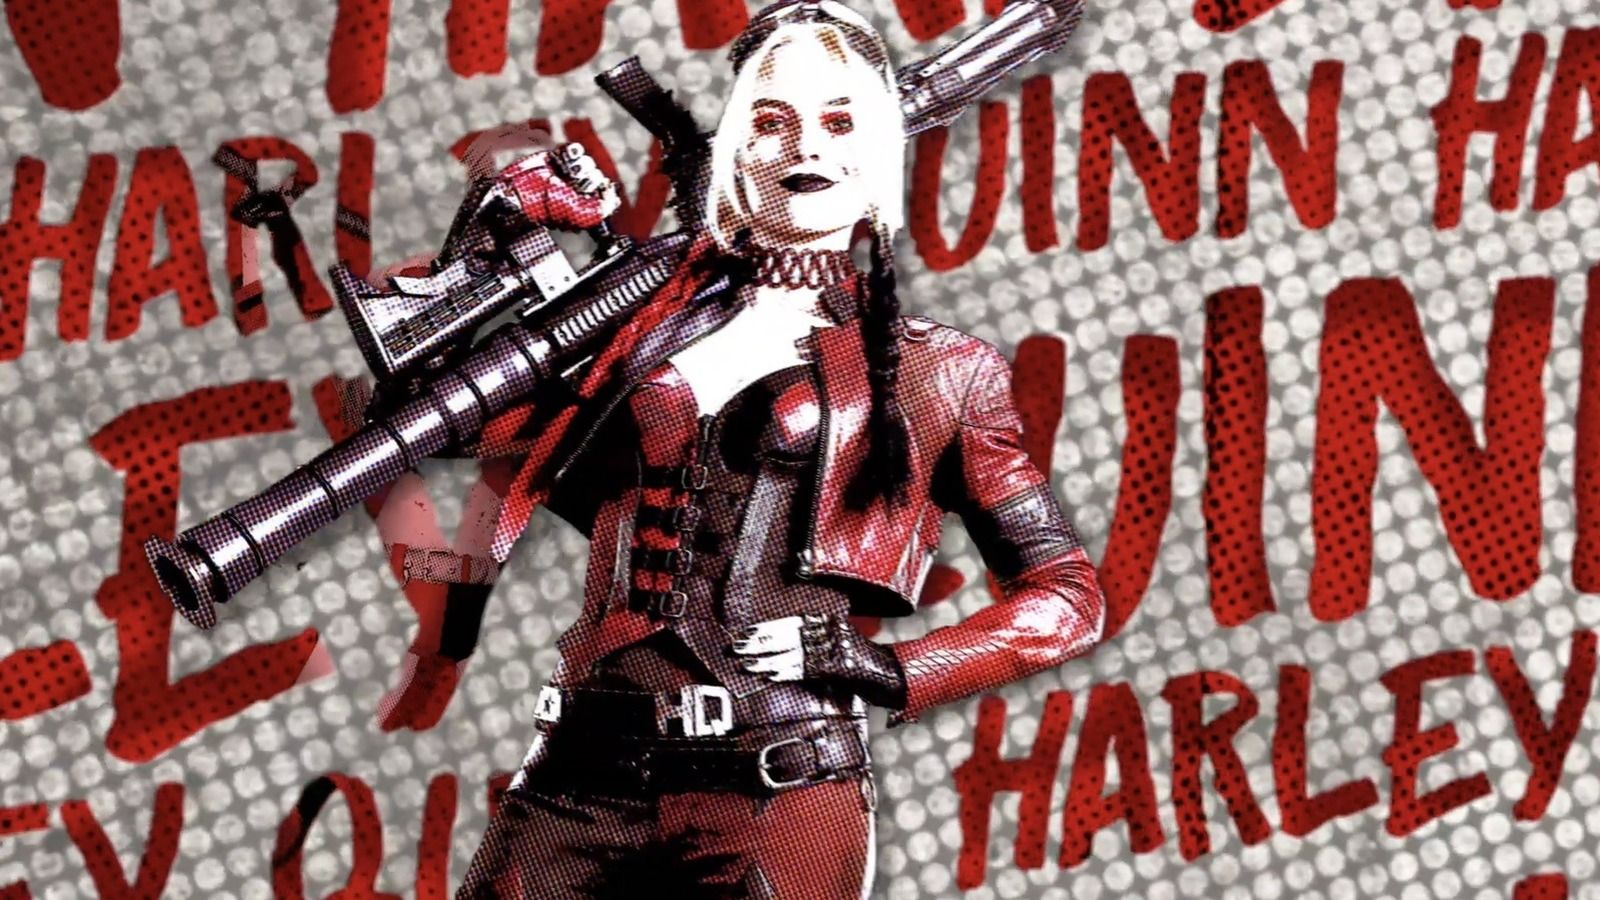 The Suicide Squad release date, cast and plot